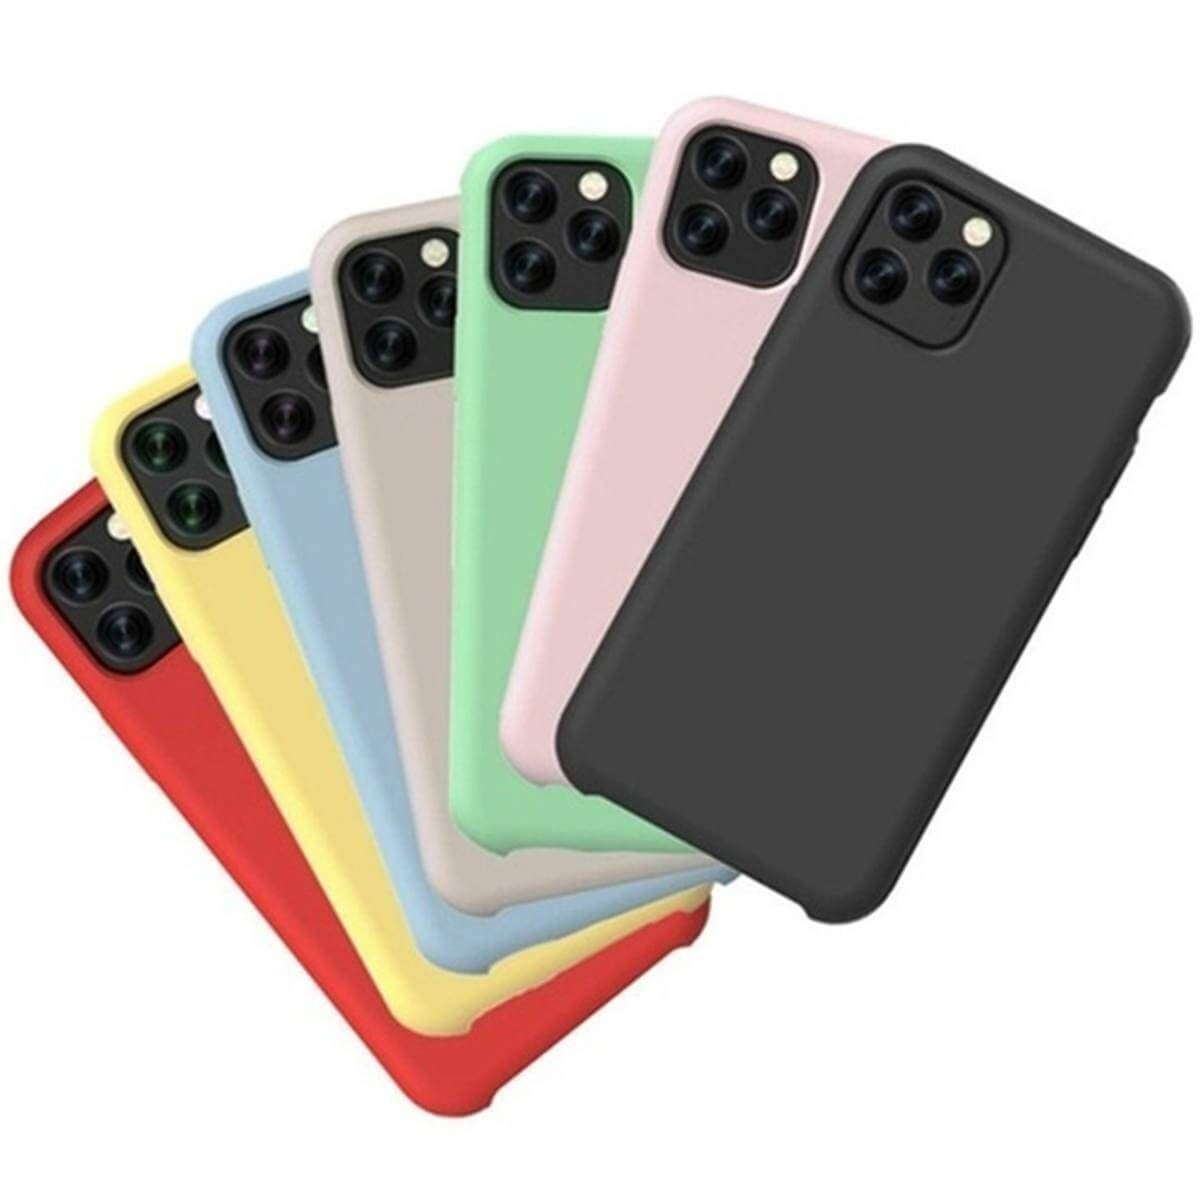 Liquid-Silicone-Shockproof-Case-For-Apple-iPhone-Soft-Matte-Back-Phone-Cover thumbnail 22